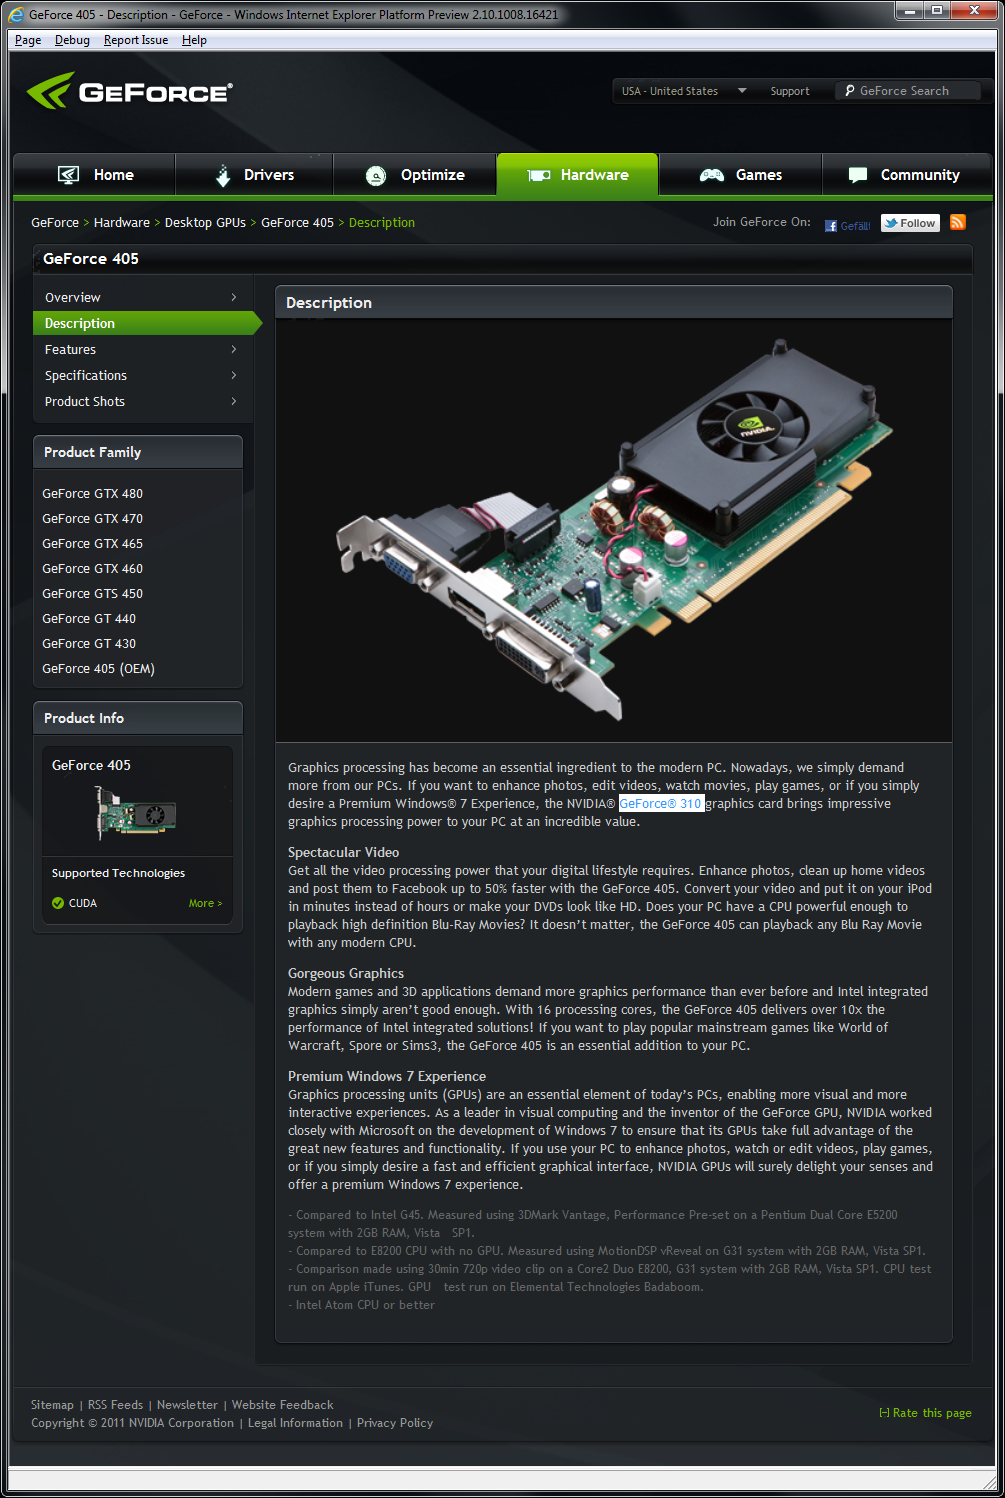 Nvidia Geforce 405 OEM - a non-Fermi card